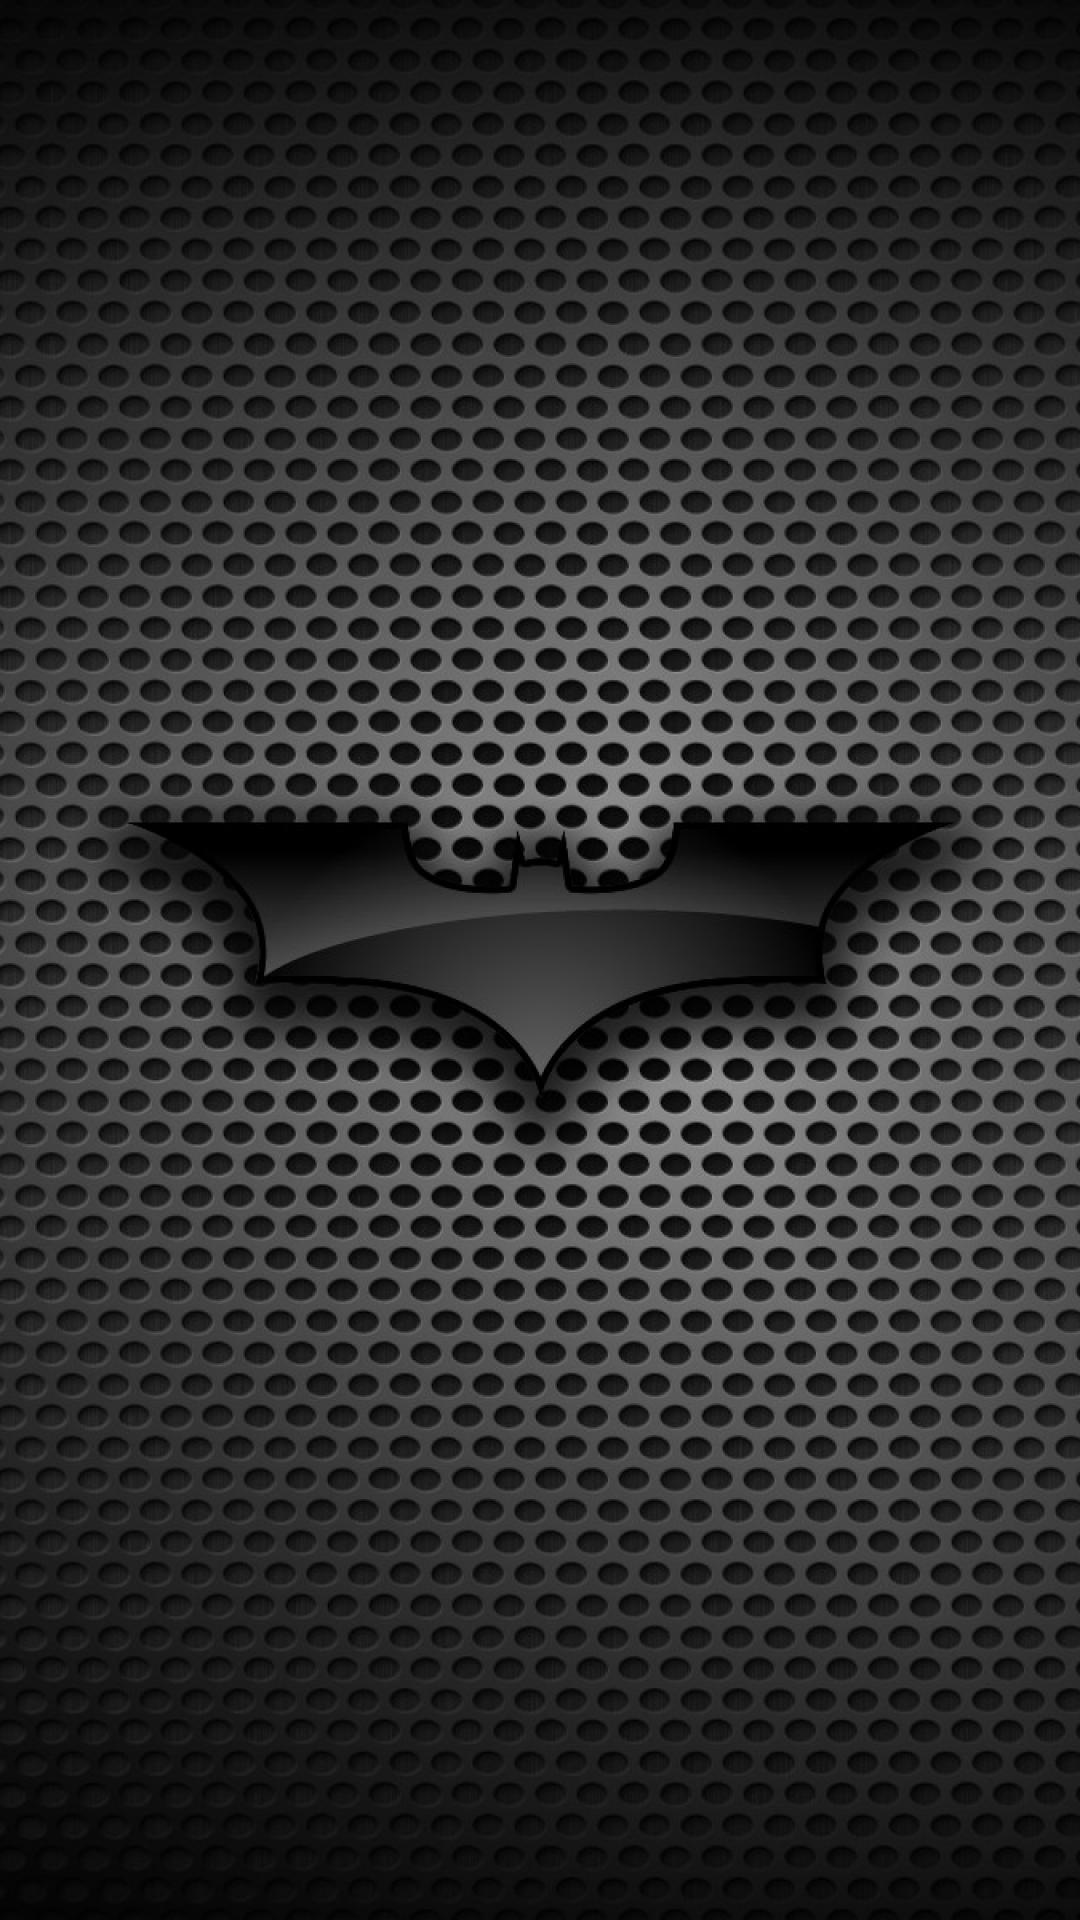 batman wallpapers batman mobile wallpapers hd 5 - supportive guru